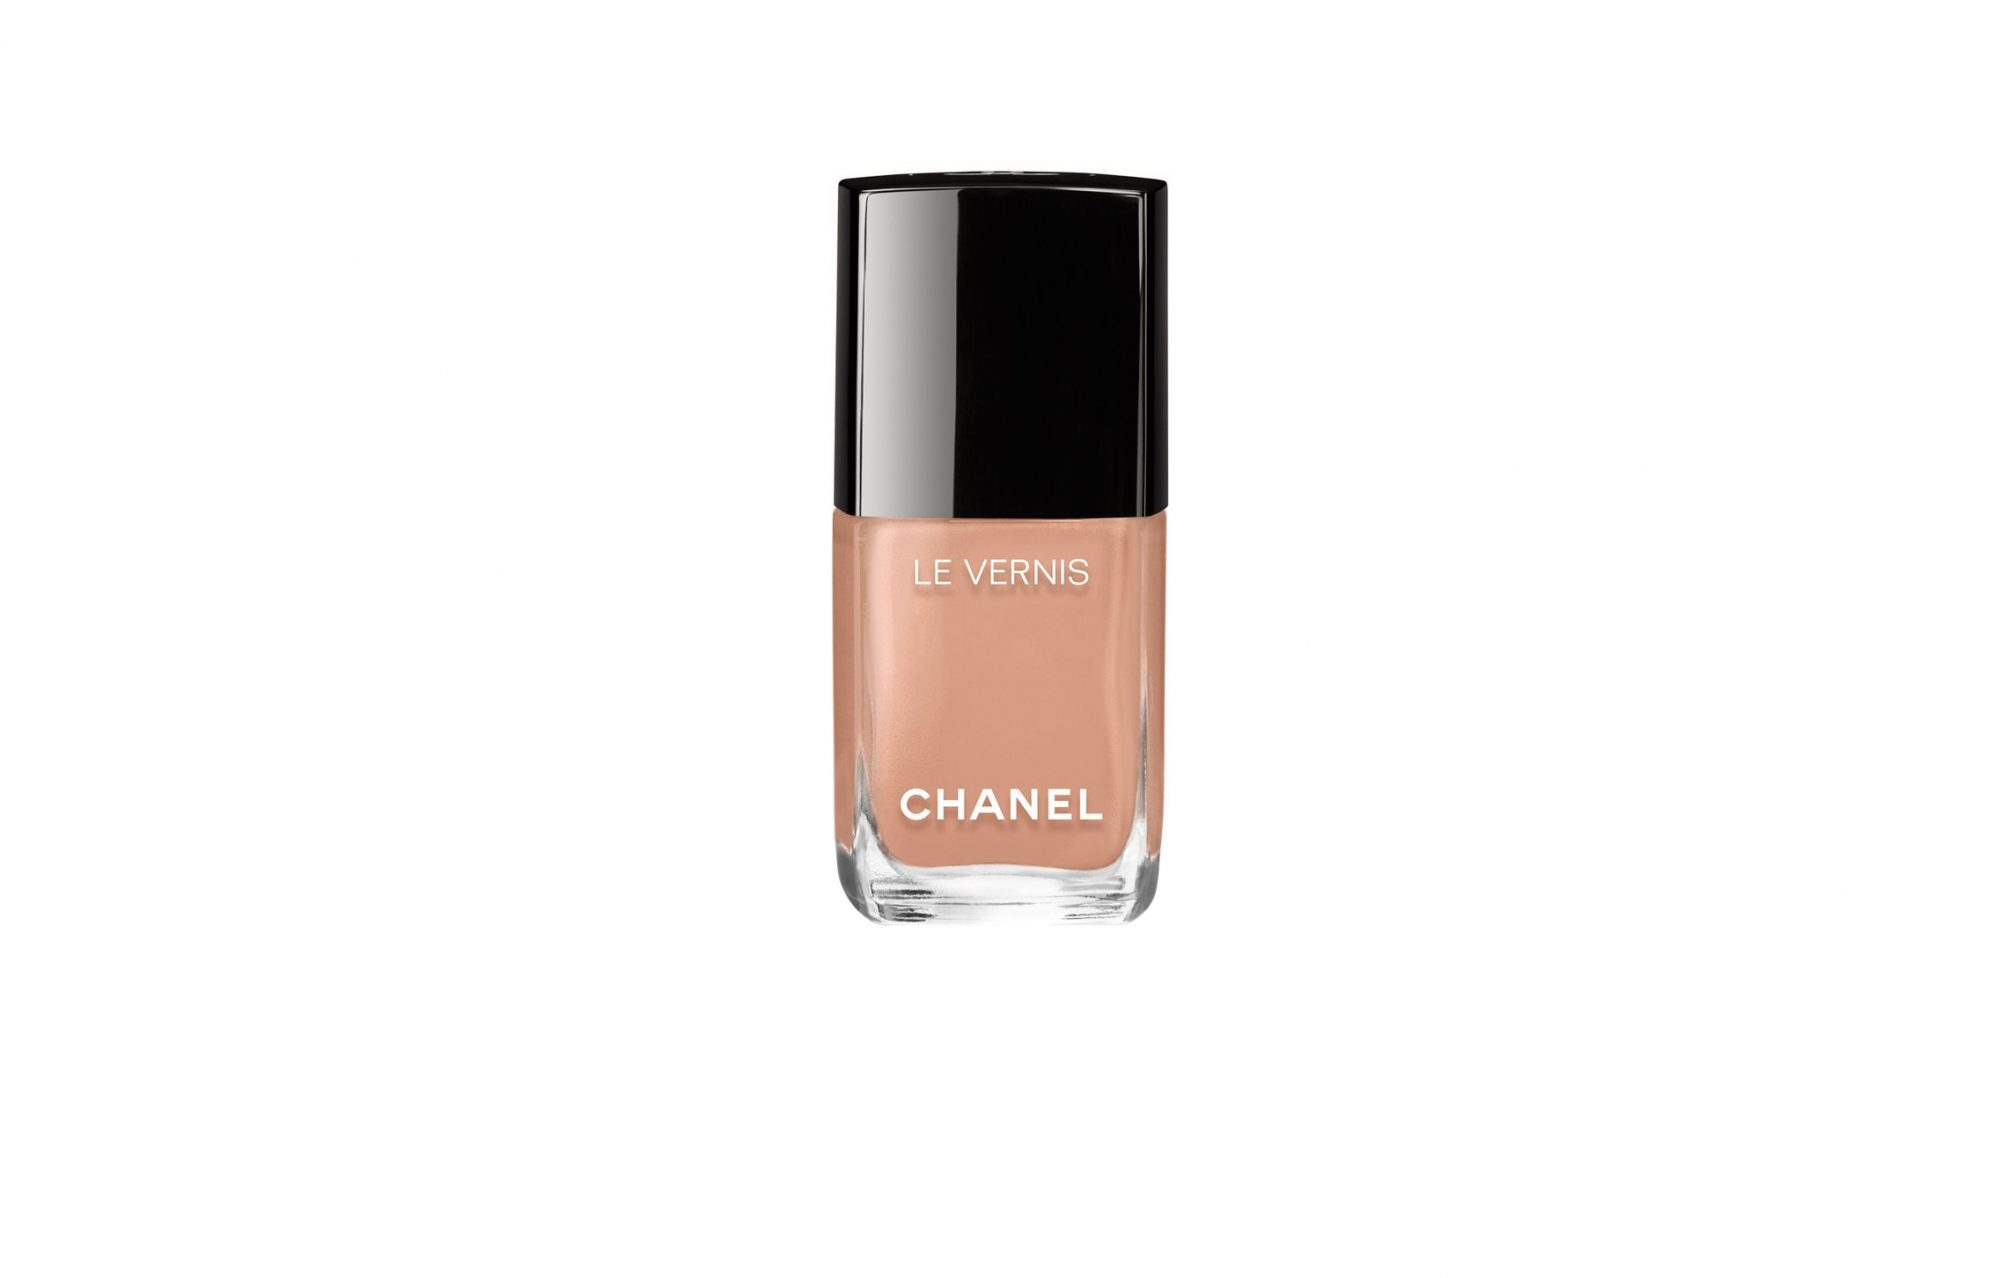 Chanel Le Vernis Longwear Nail Colour in Beige